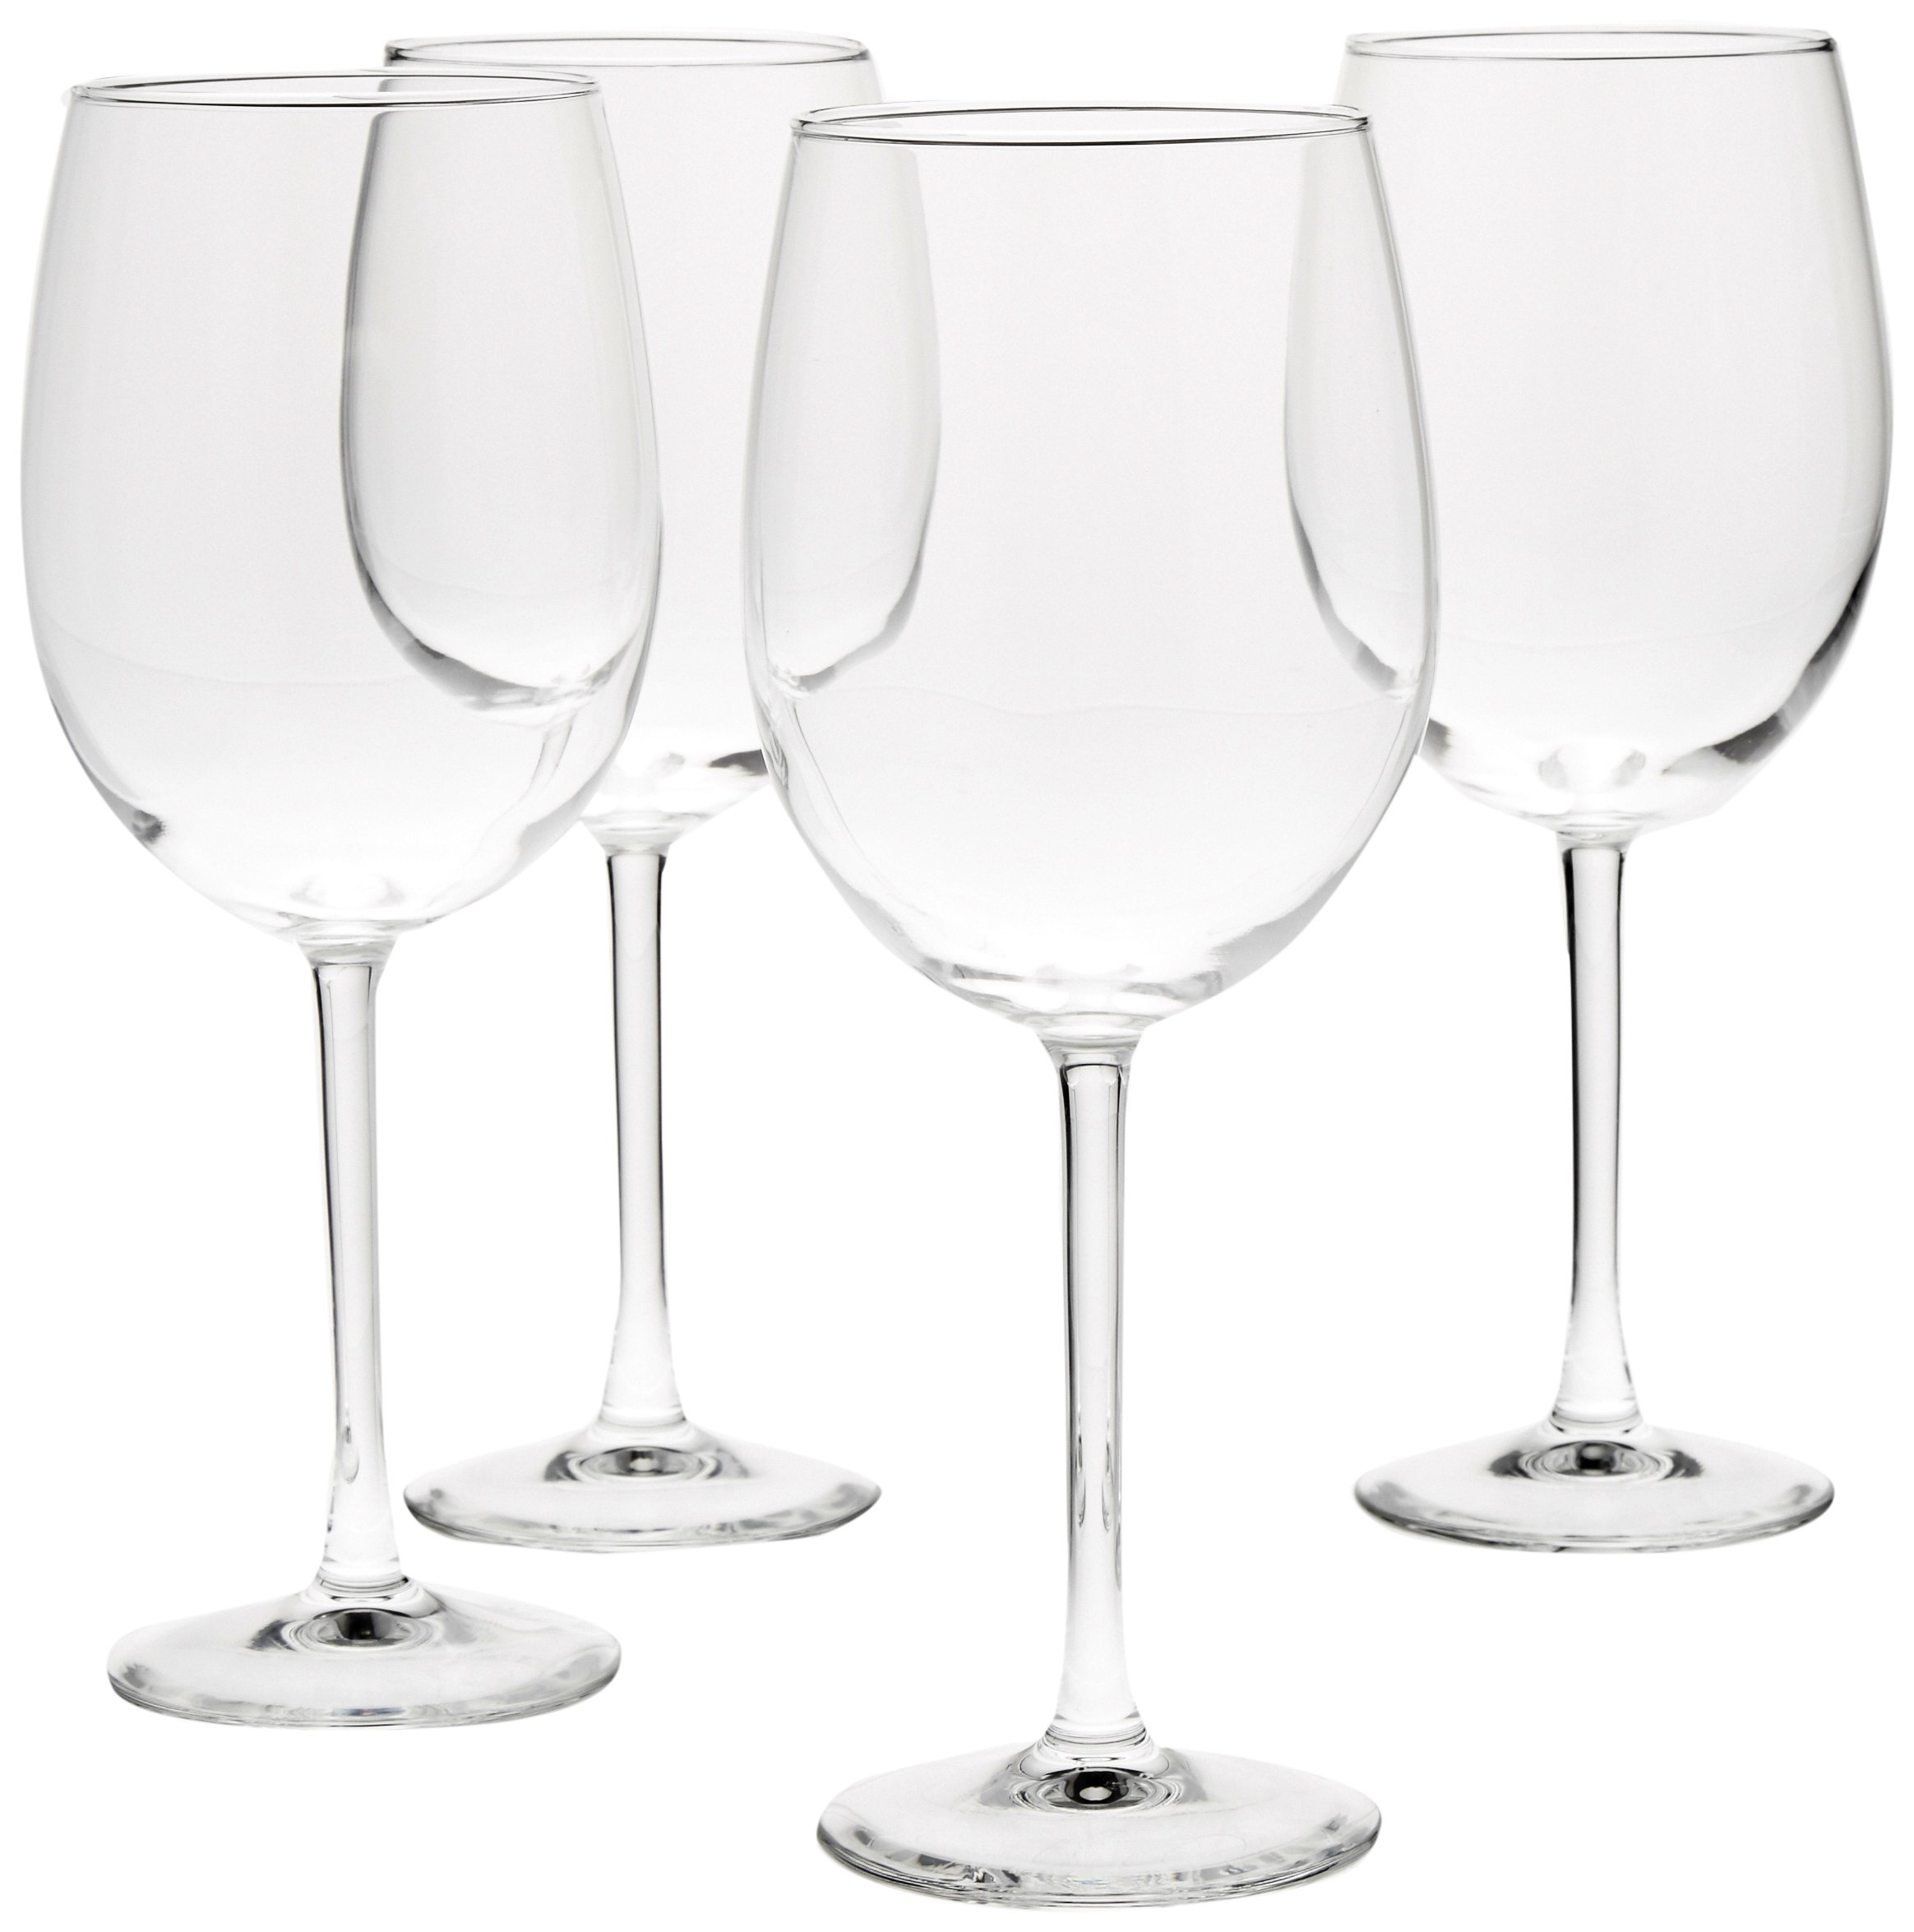 AmazonBasics All-Purpose Wine Glasses - 19-Ounce, Set of 4 by AmazonBasics